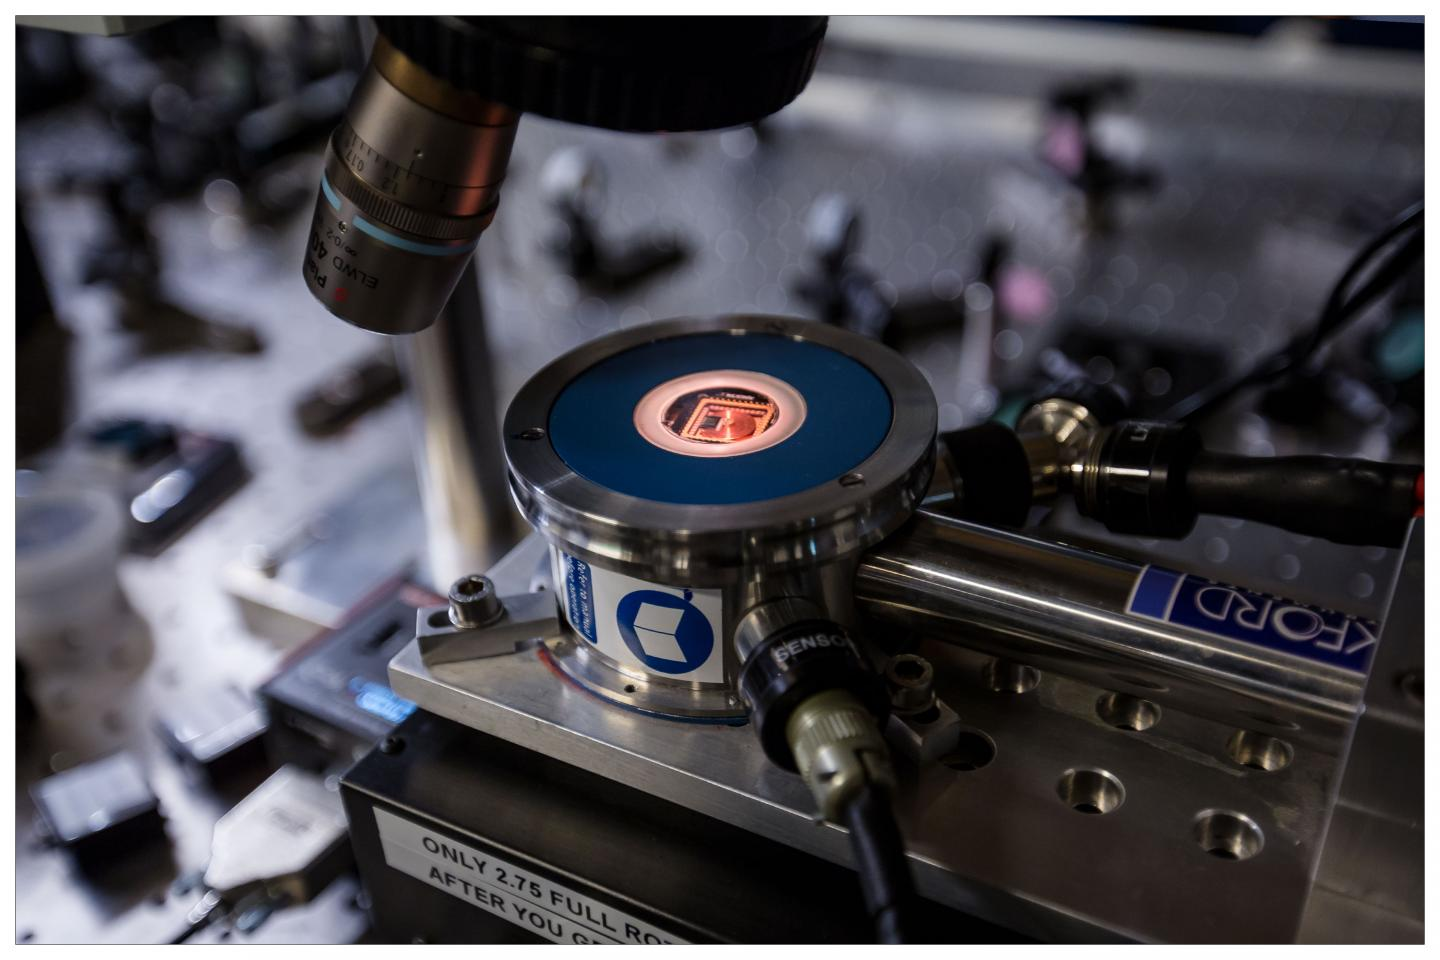 Nanomechanical router: Nanocomponent is a quantum leap